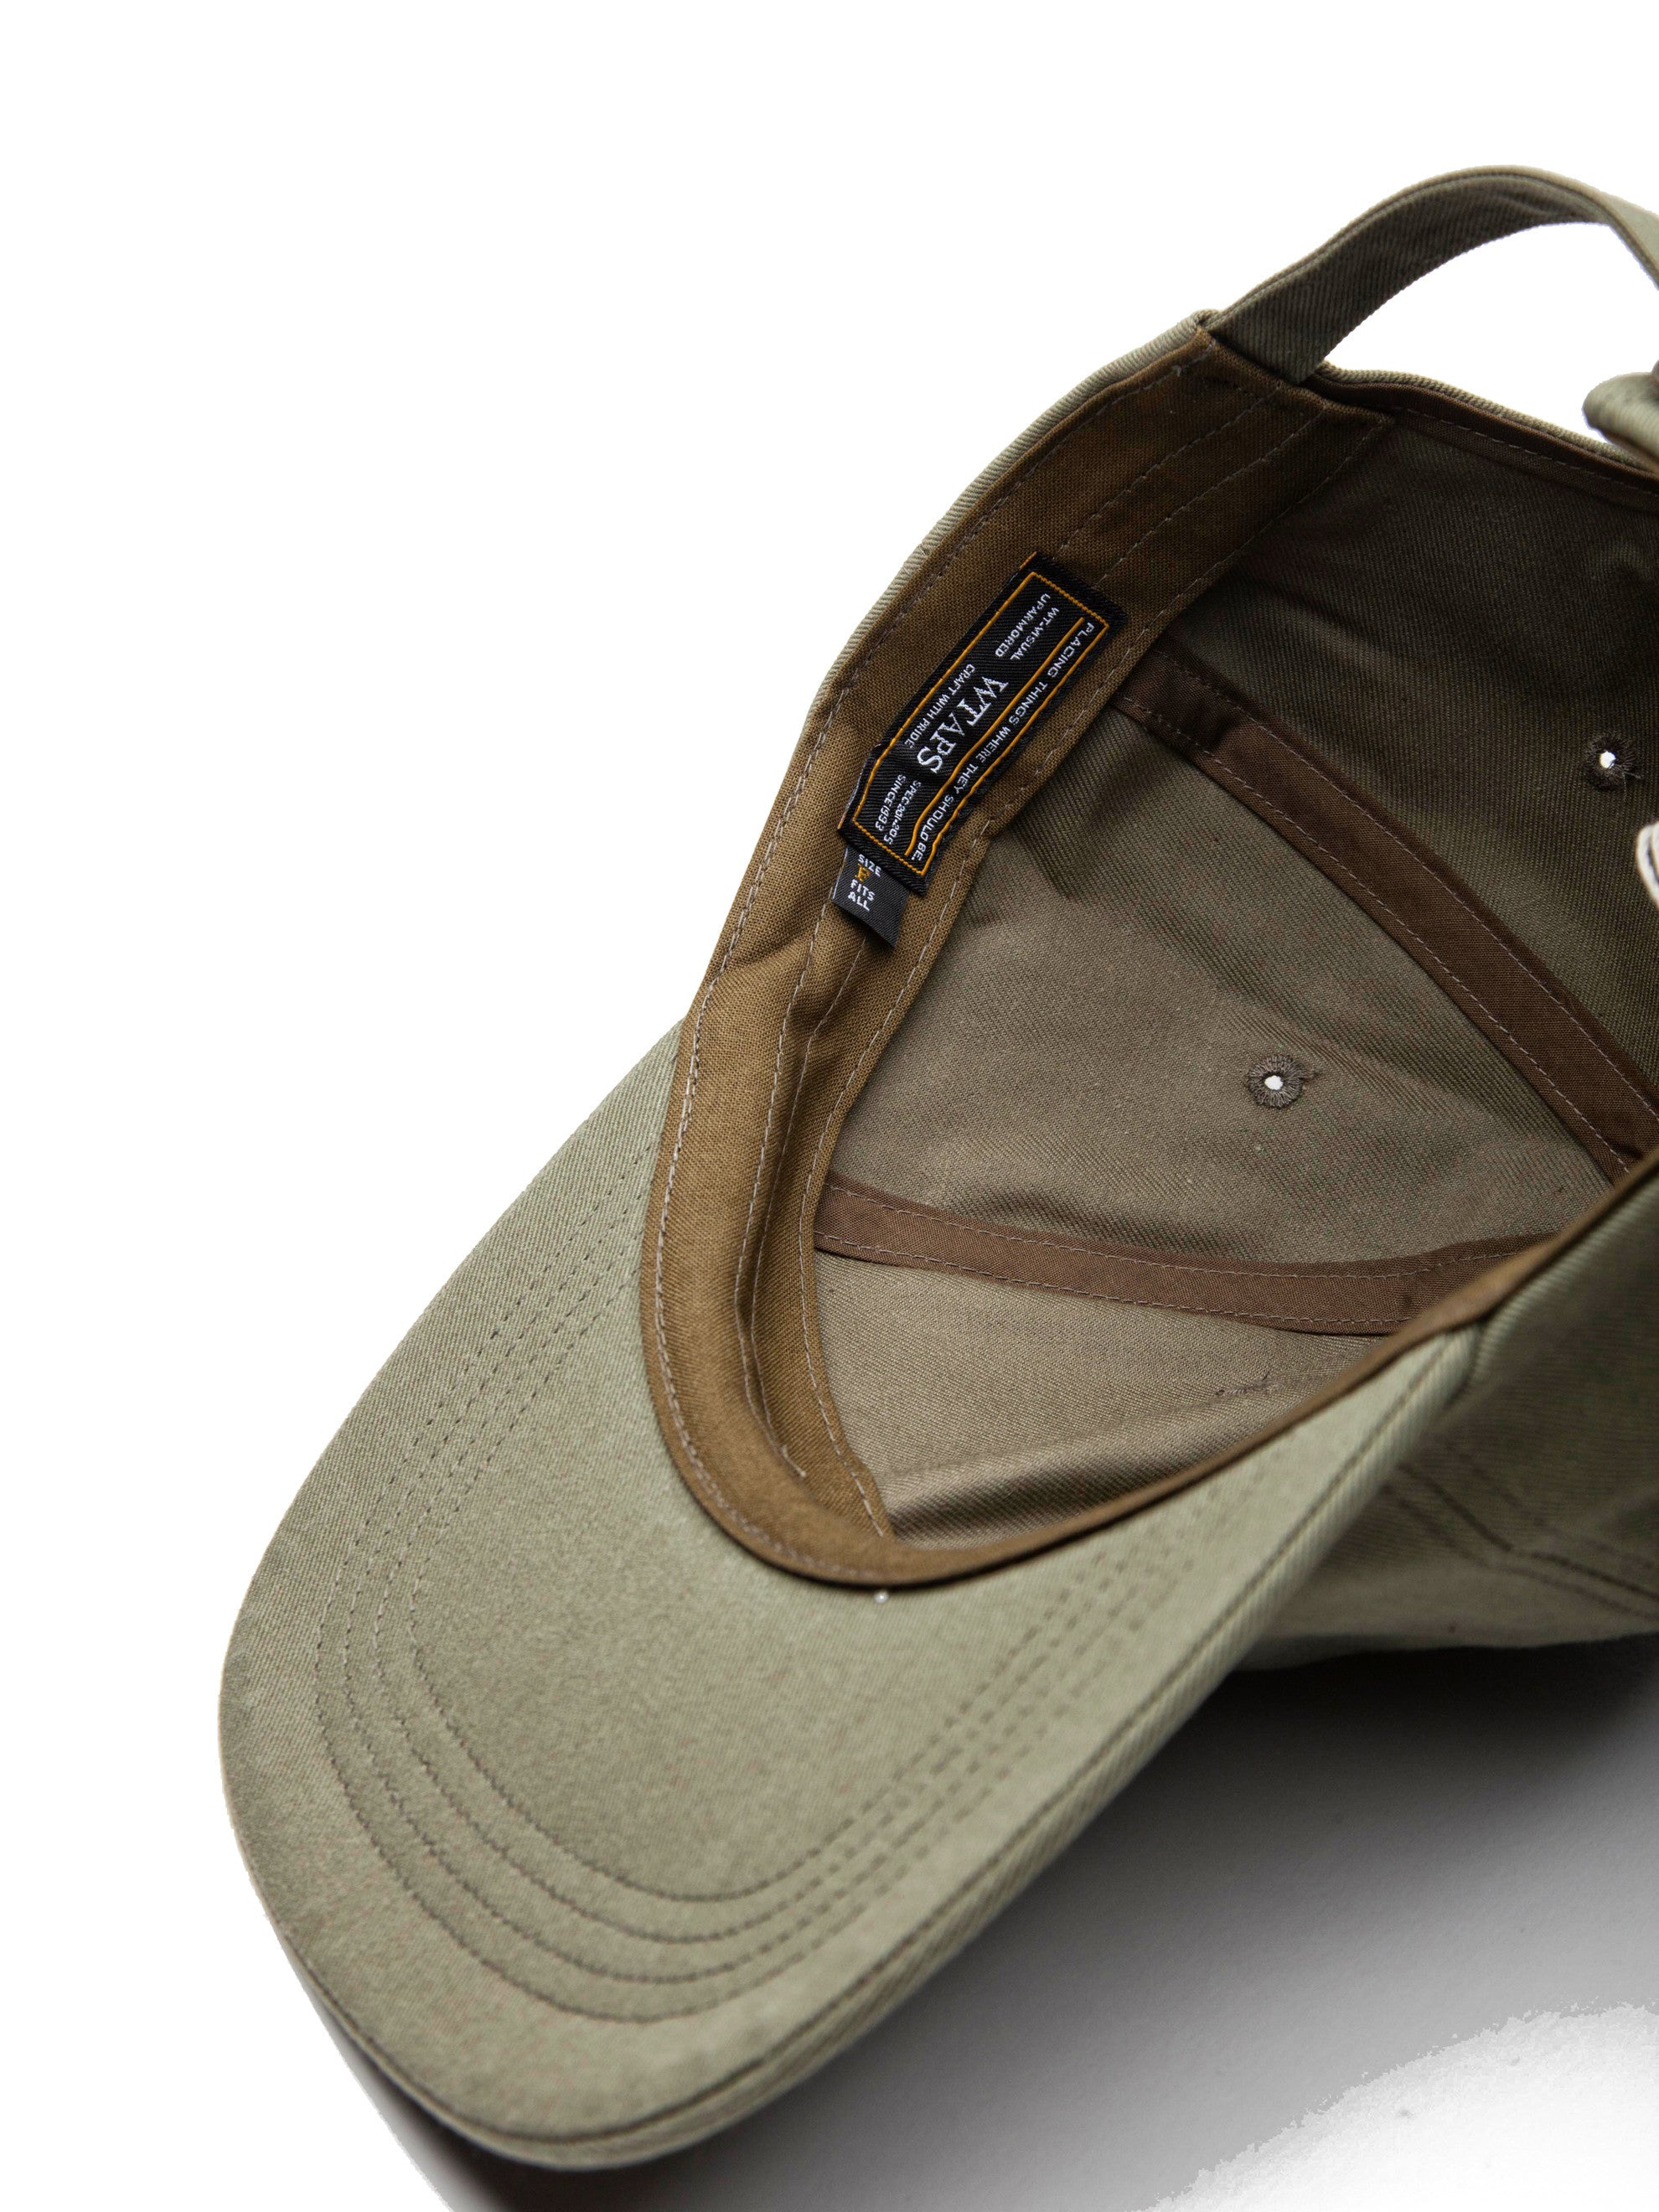 Olive Drab T-6 Cap (Cotton Chino) 6